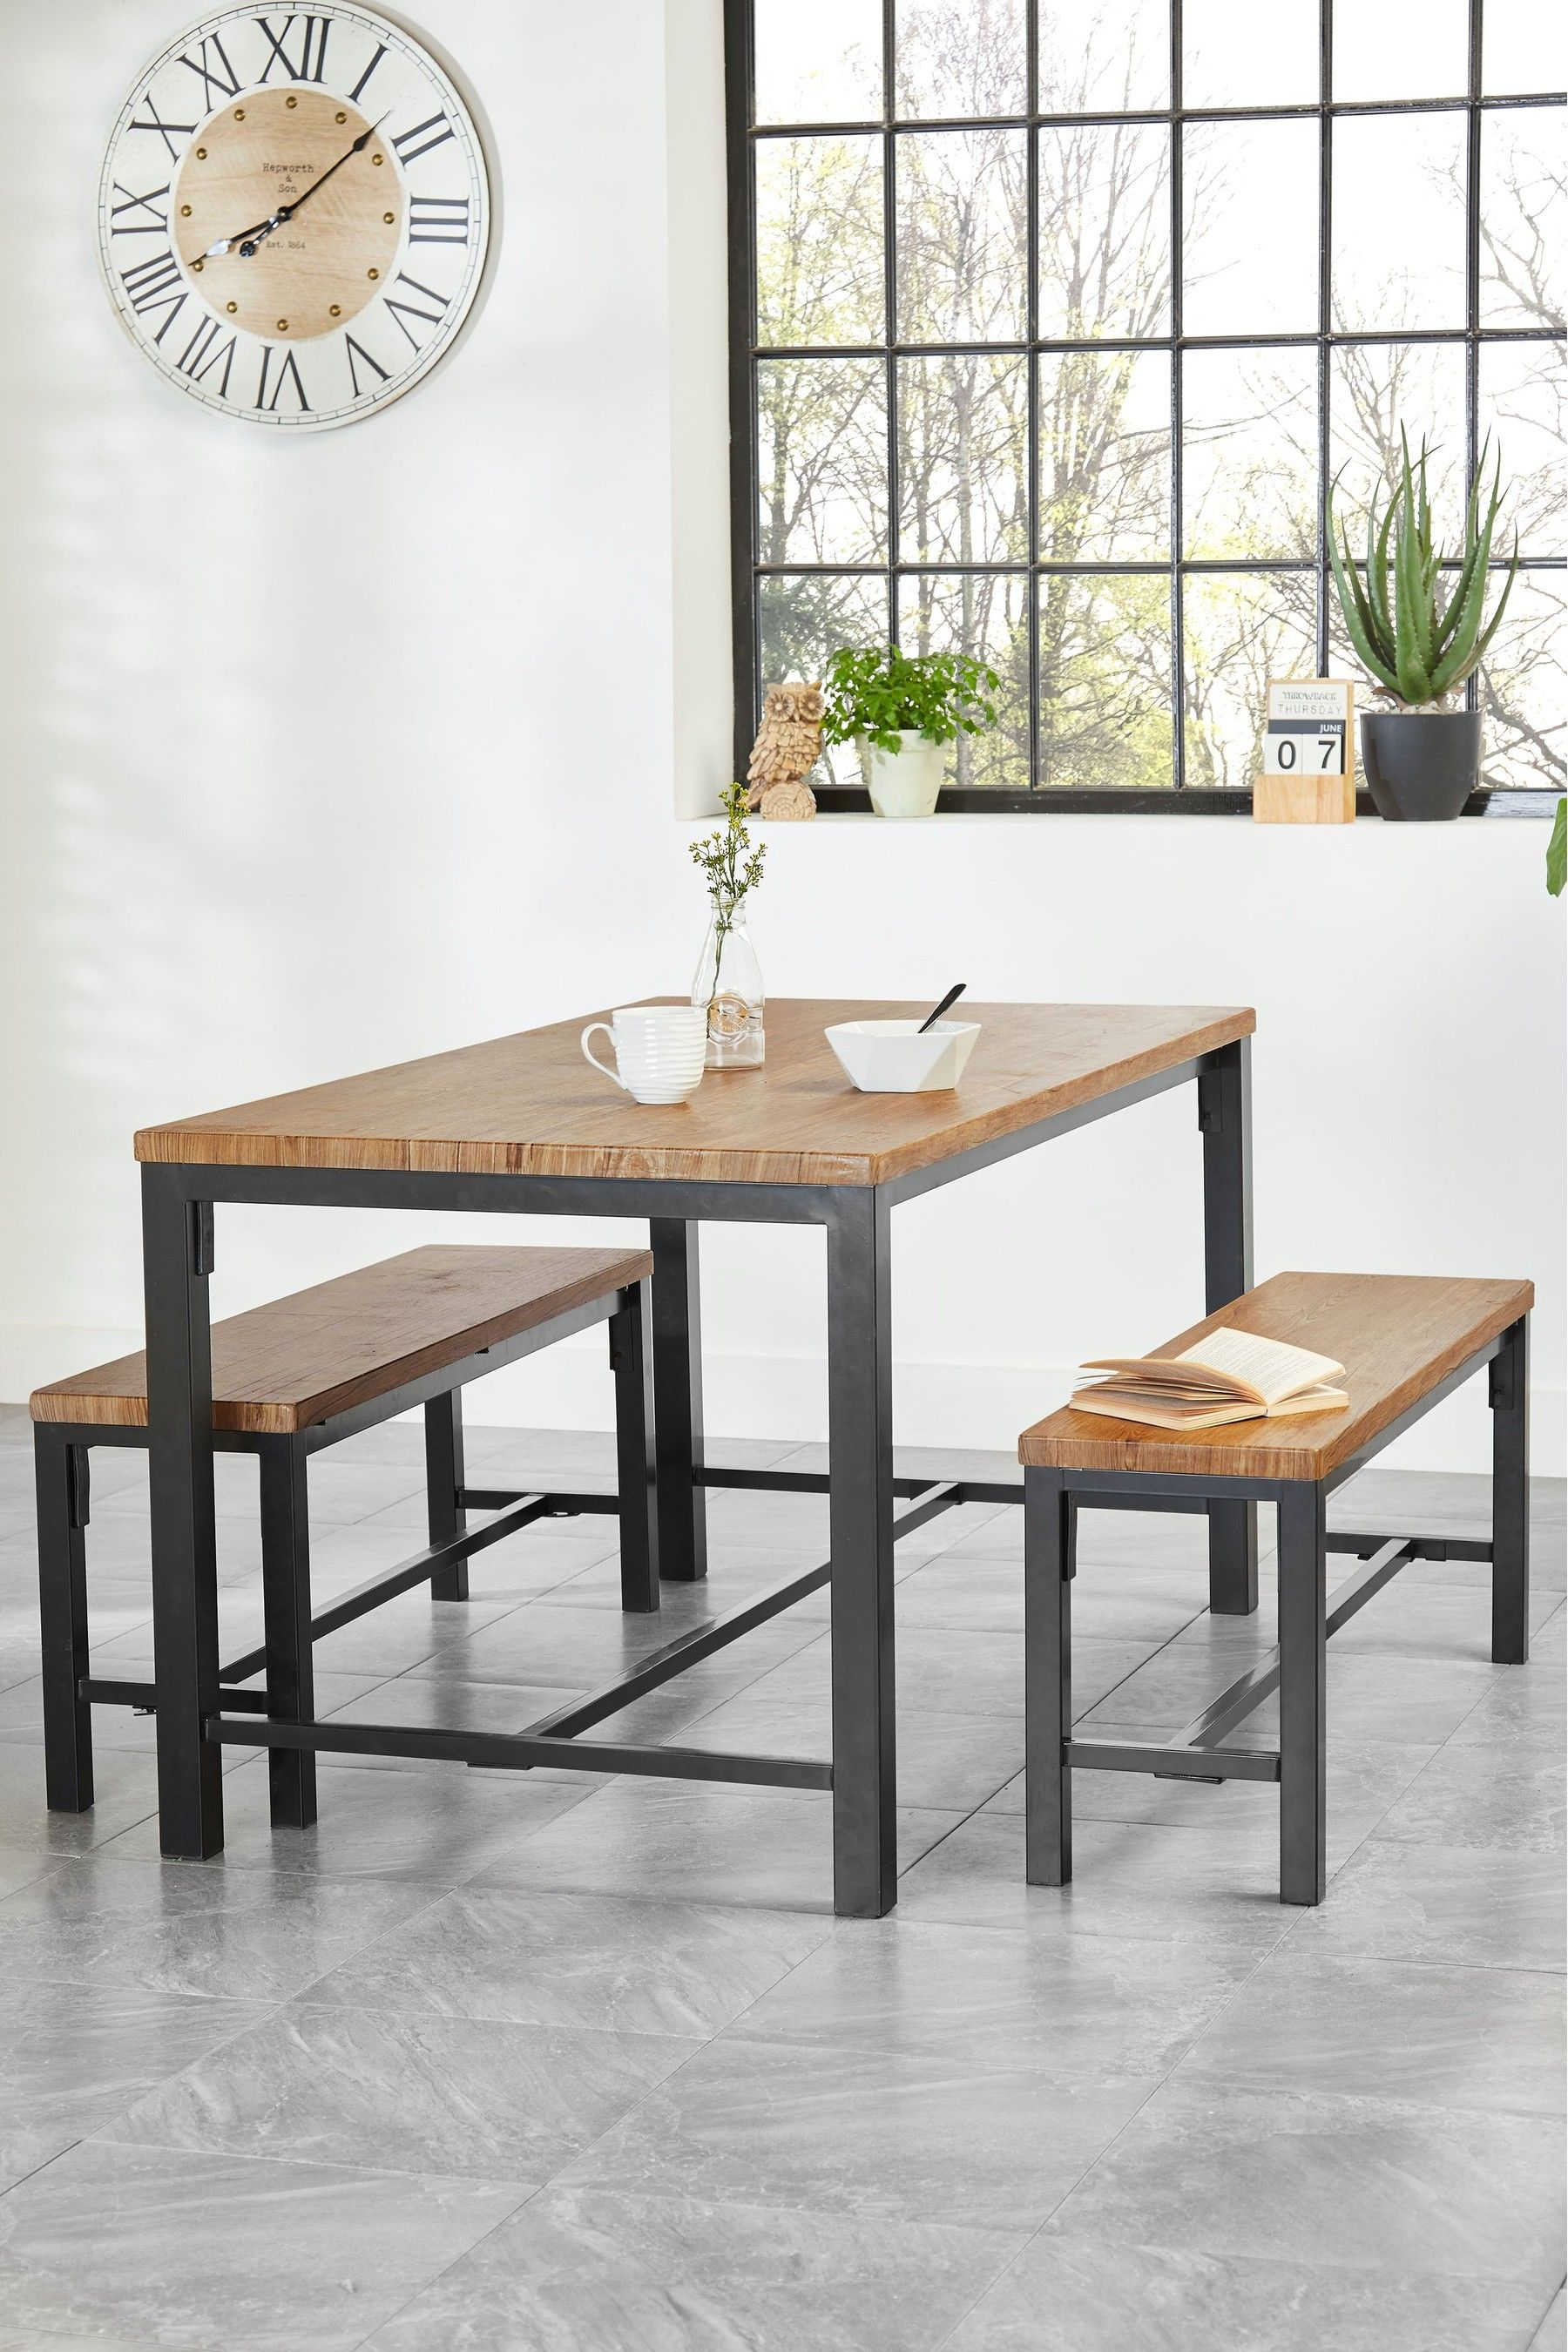 Ellison Dining Table And Bench Set Dining Table With Bench Table Bench Set Dining Room Sets